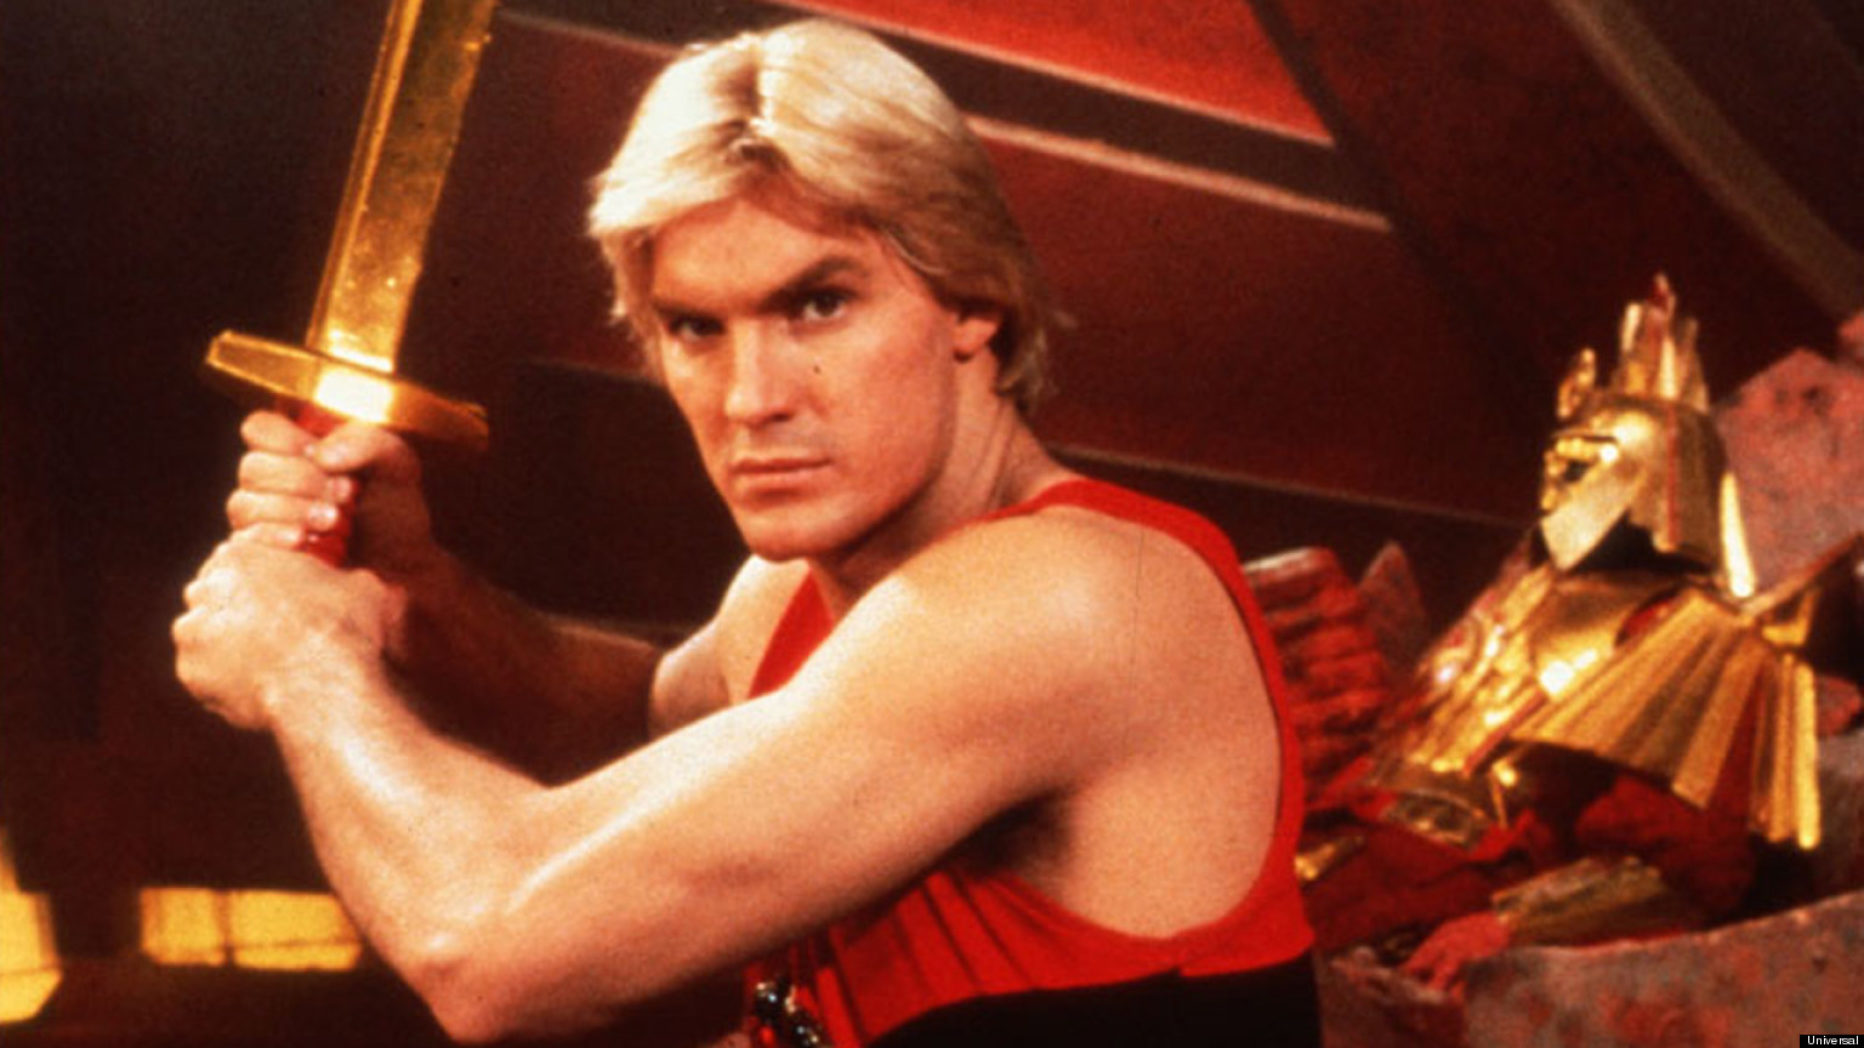 Sam J. Jones (FLASH GORDON, TED) Talks About His New Documentary 'Life After Flash'